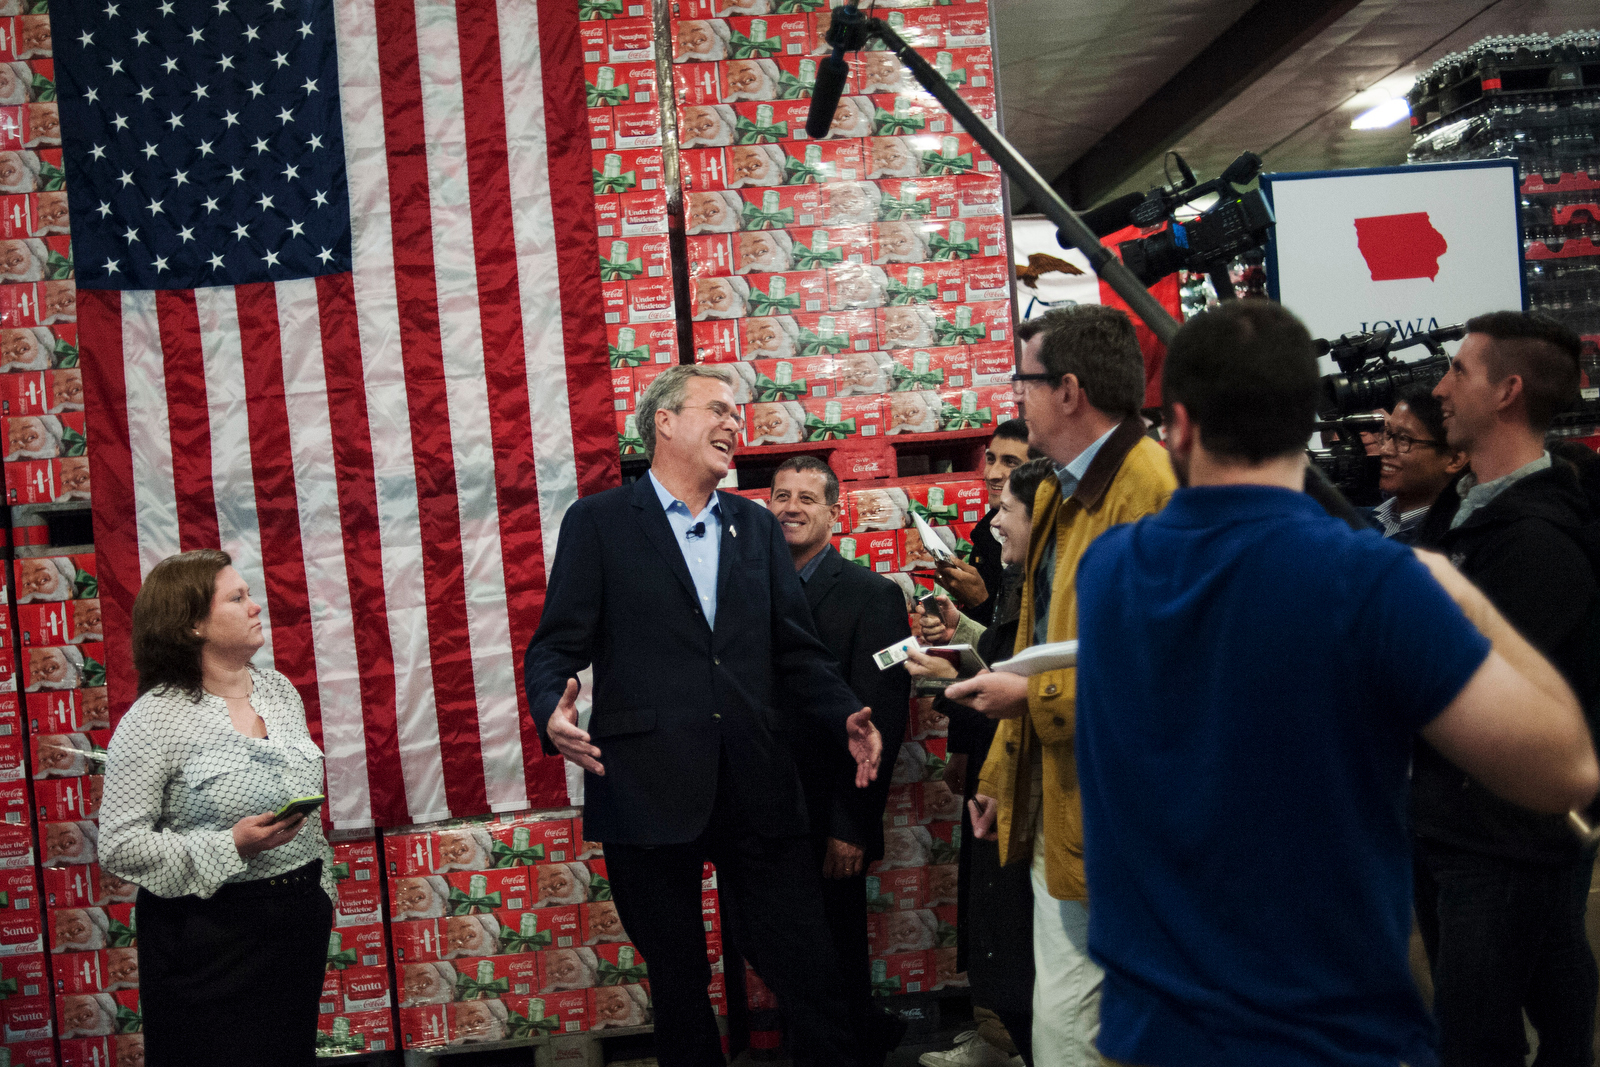 U.S. Republican presidential candidate Jeb Bush speaks with the media after a town hall at the Coca-Cola bottling plant in Atlantic, IA November 11, 2015.